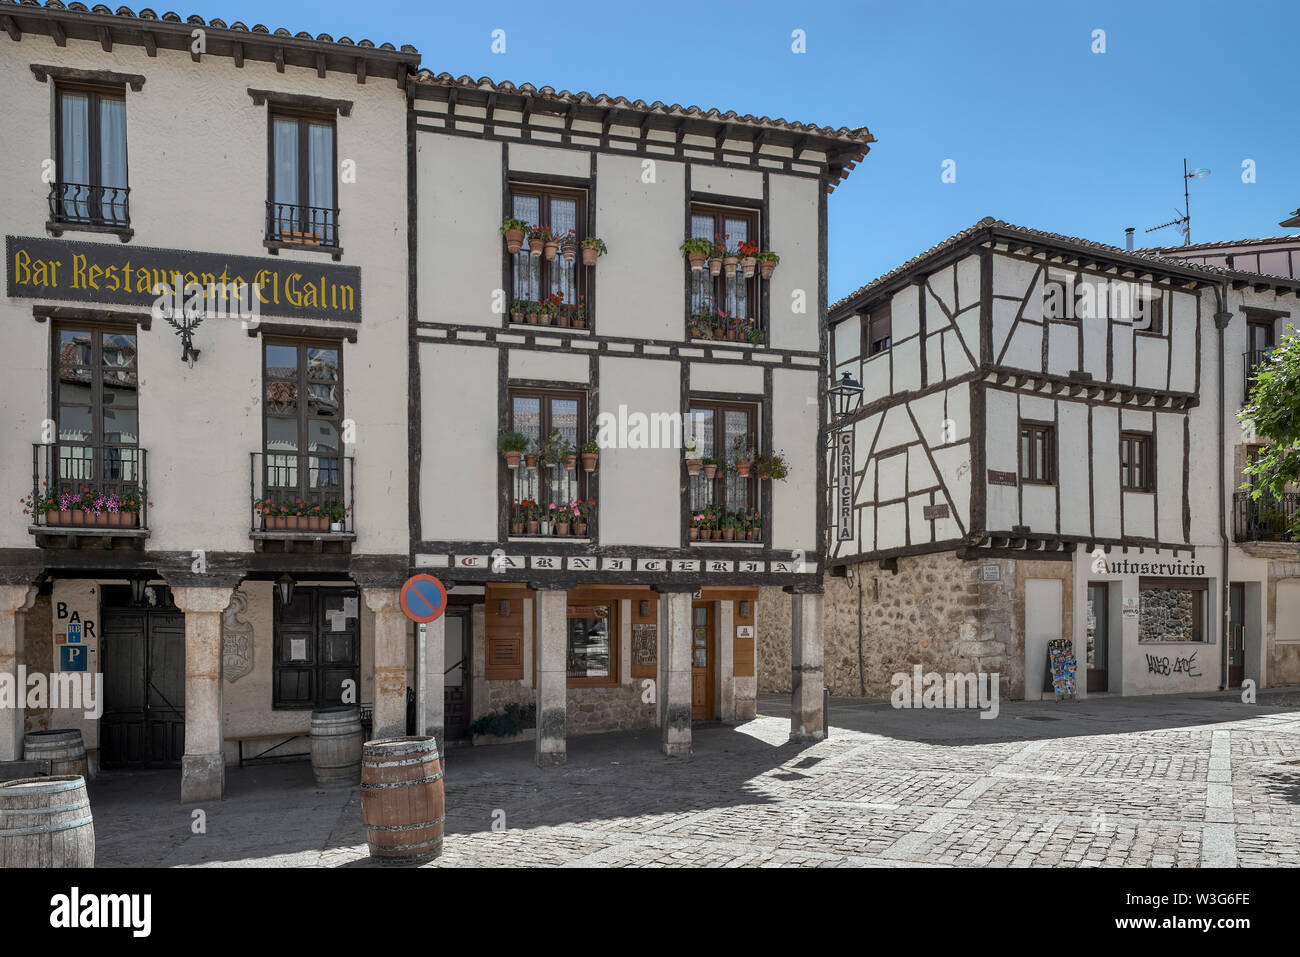 bar, restaurant, butcher and self-service in the Plaza dora Urraca in the town of Covarrubias in the province of Burgos, Spain, Europe - Stock Image